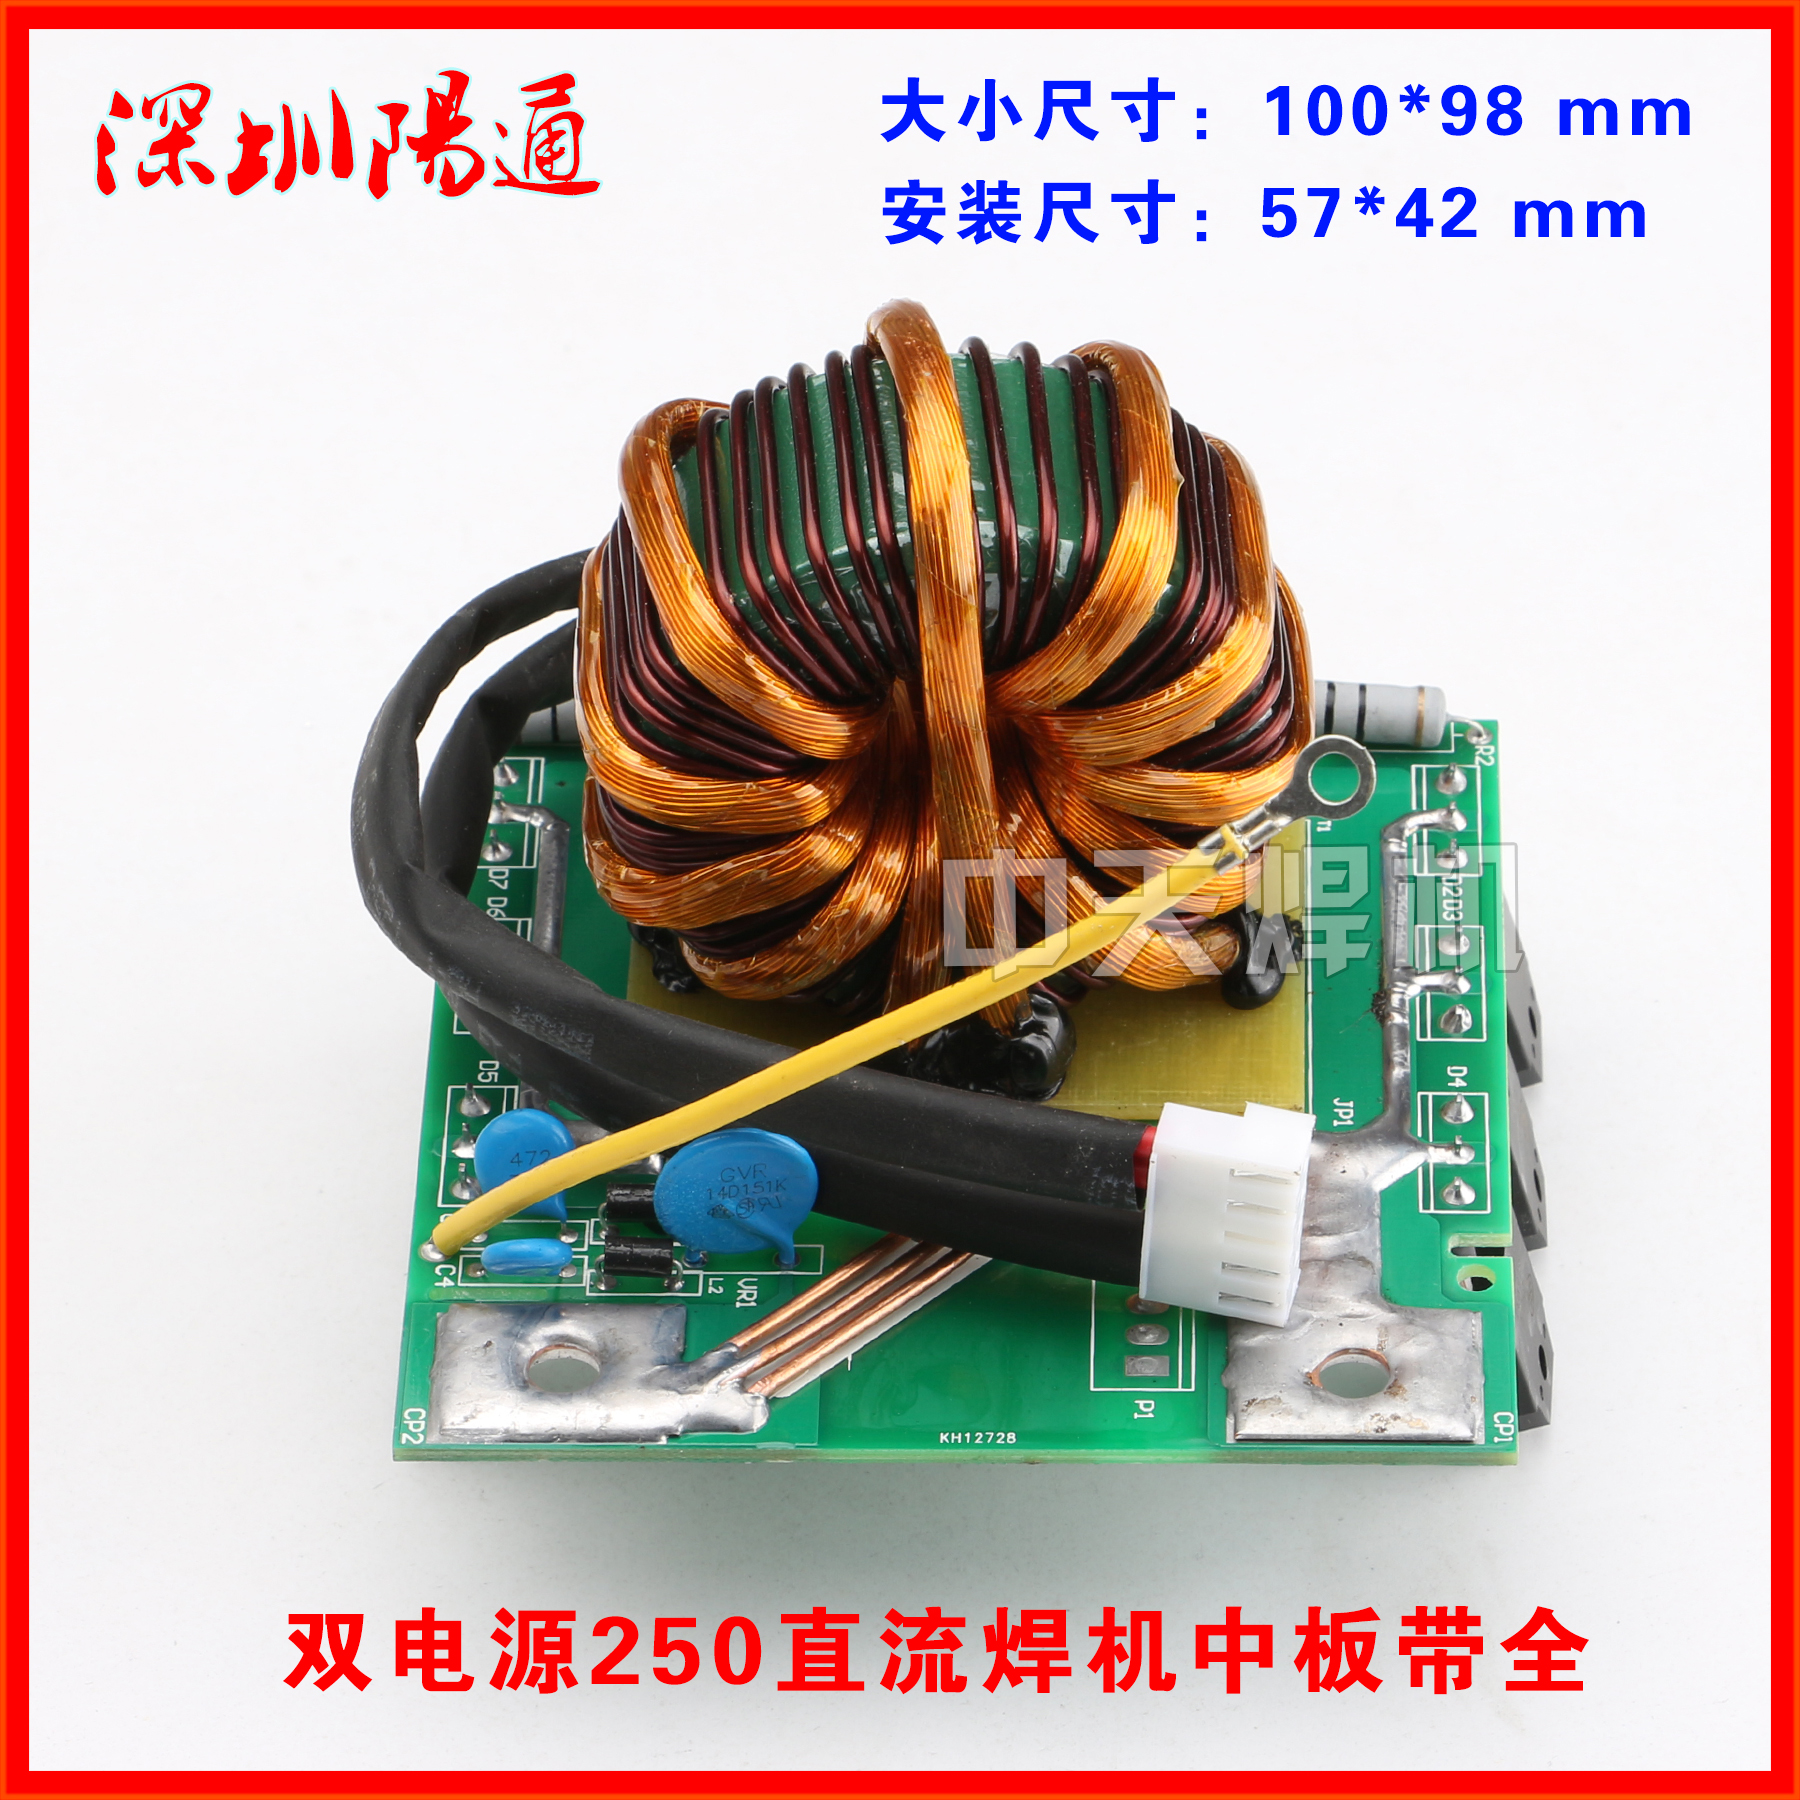 Zx7 315 Igbt Control Pcb Single Board For Mma Welding Machine Circuit Of Inverter Welder Arc200 View Double Voltage 250s Dc With Transformer Rectifier Tube Replacement Repair